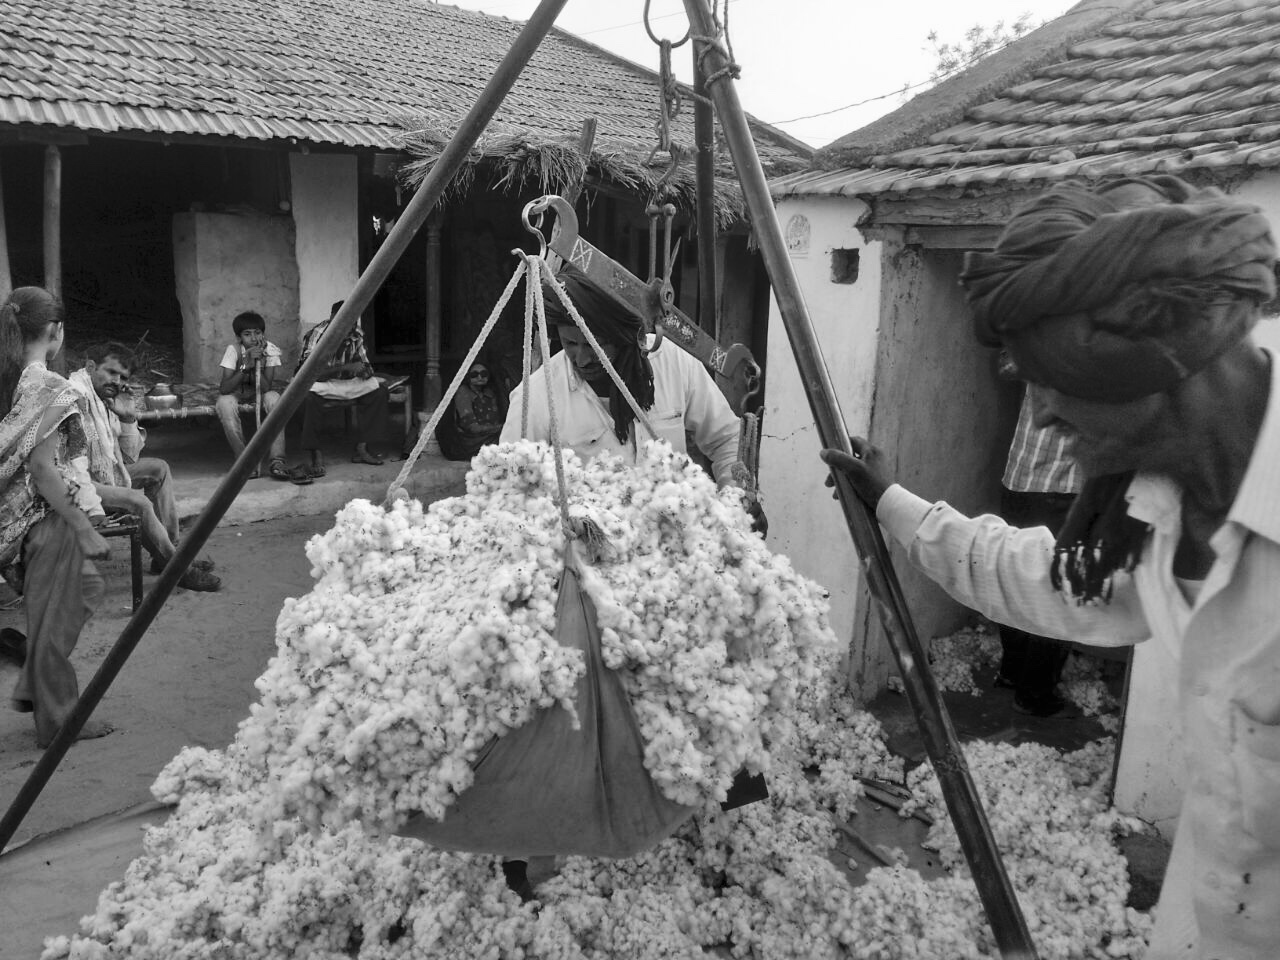 Buying raw kala cotton directly from the local growers